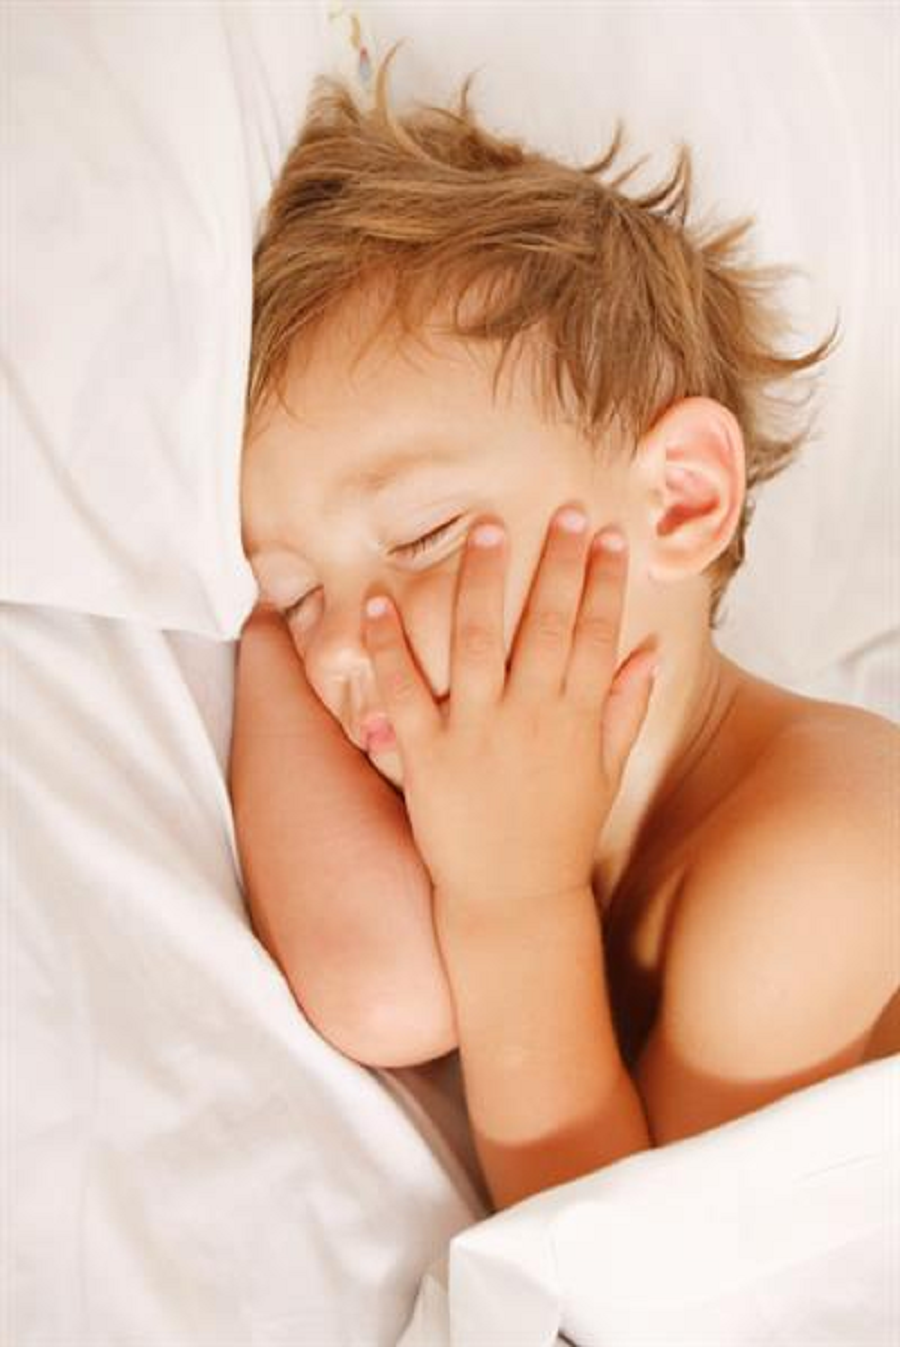 Is Your Child Getting The Right Amount of Sleep Each Night?